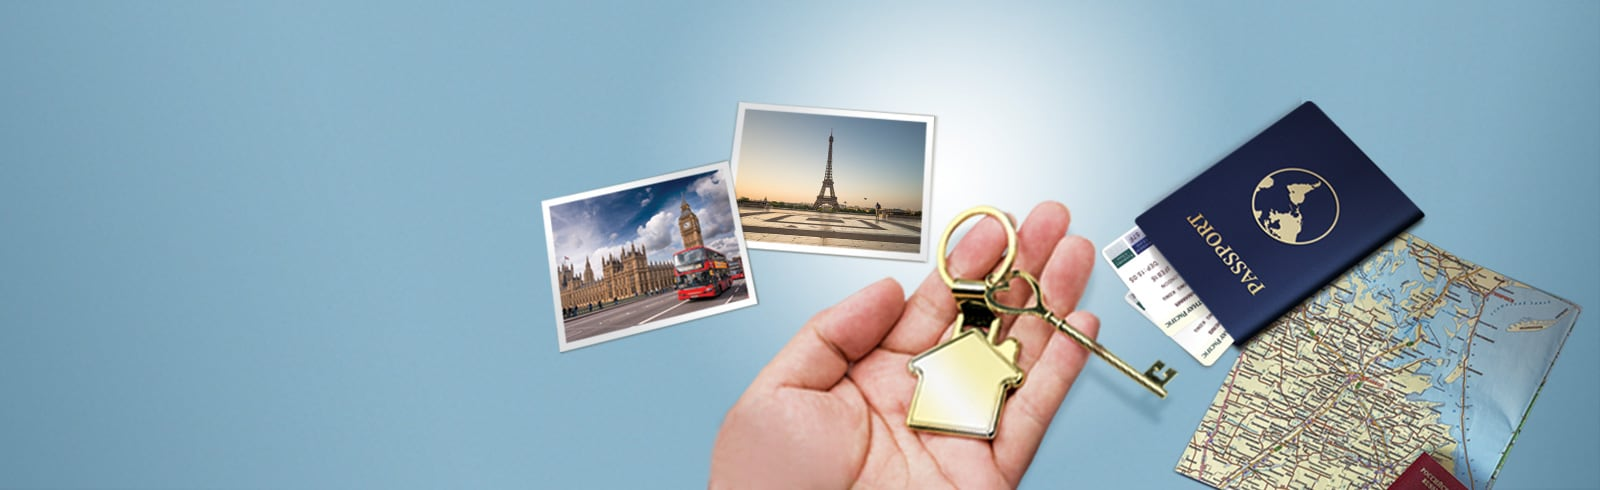 photos, passport, map, and a hand holding a key with a house keychain